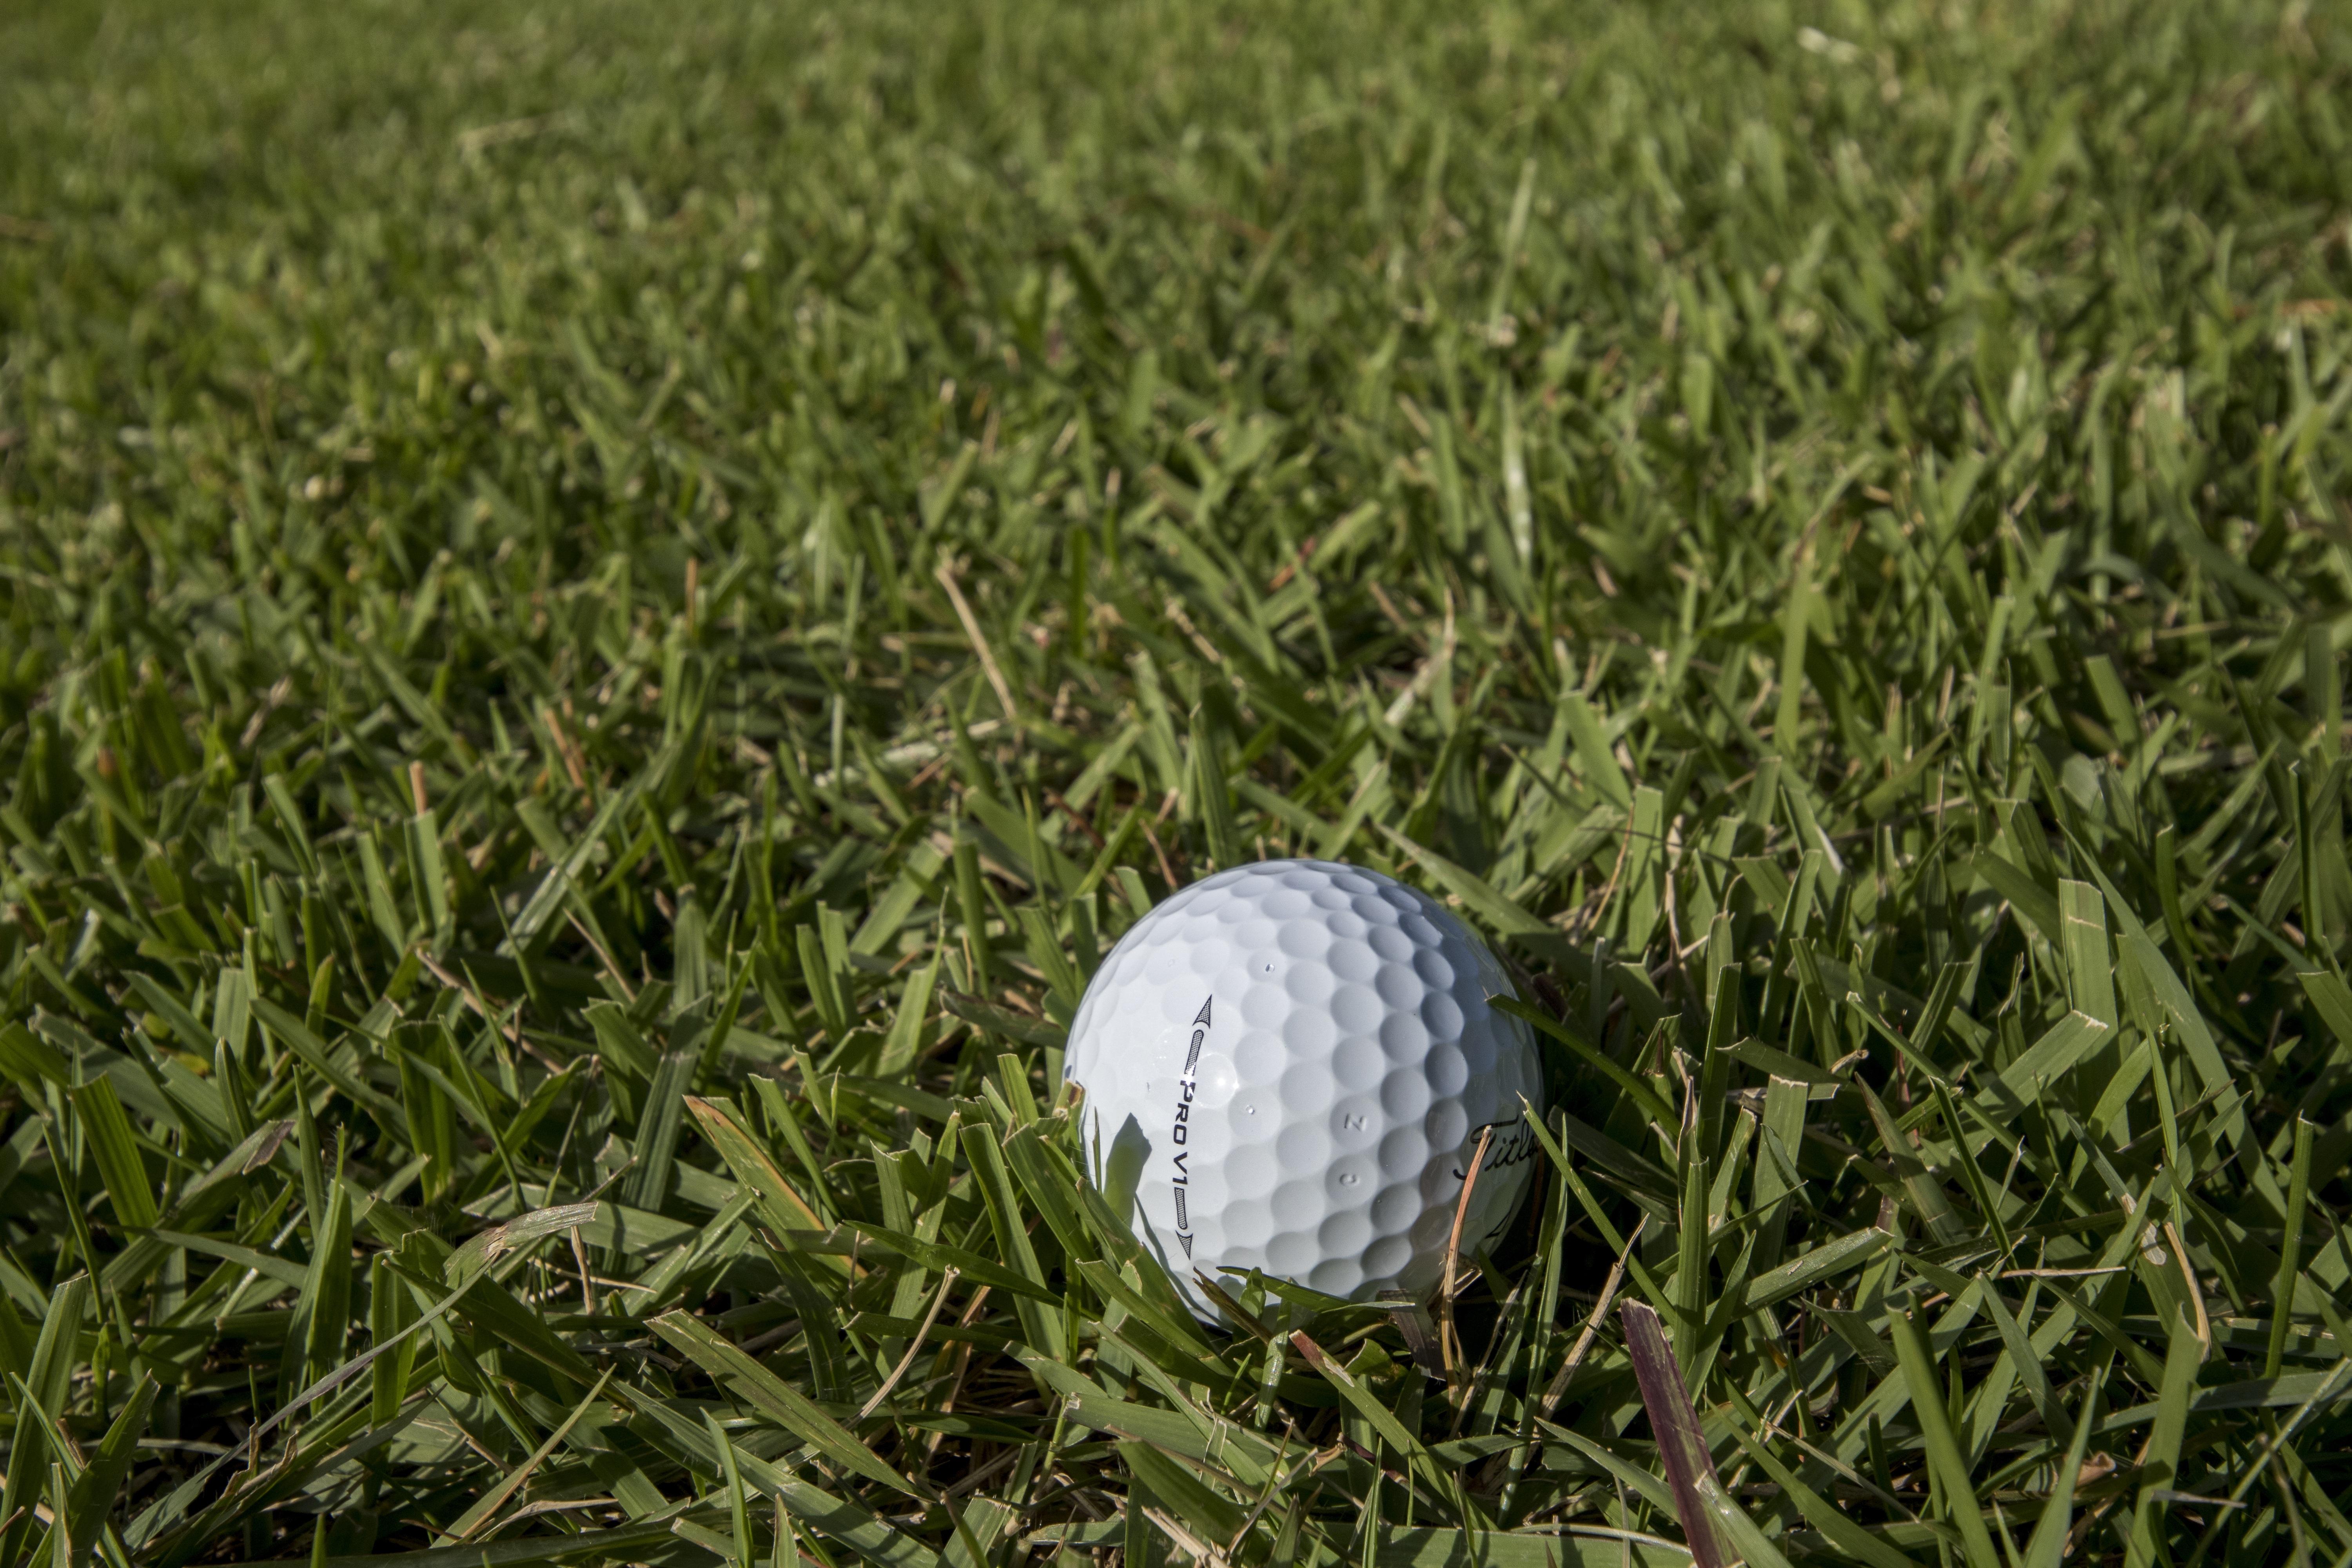 White Golf Ball In Green Grass Free Image